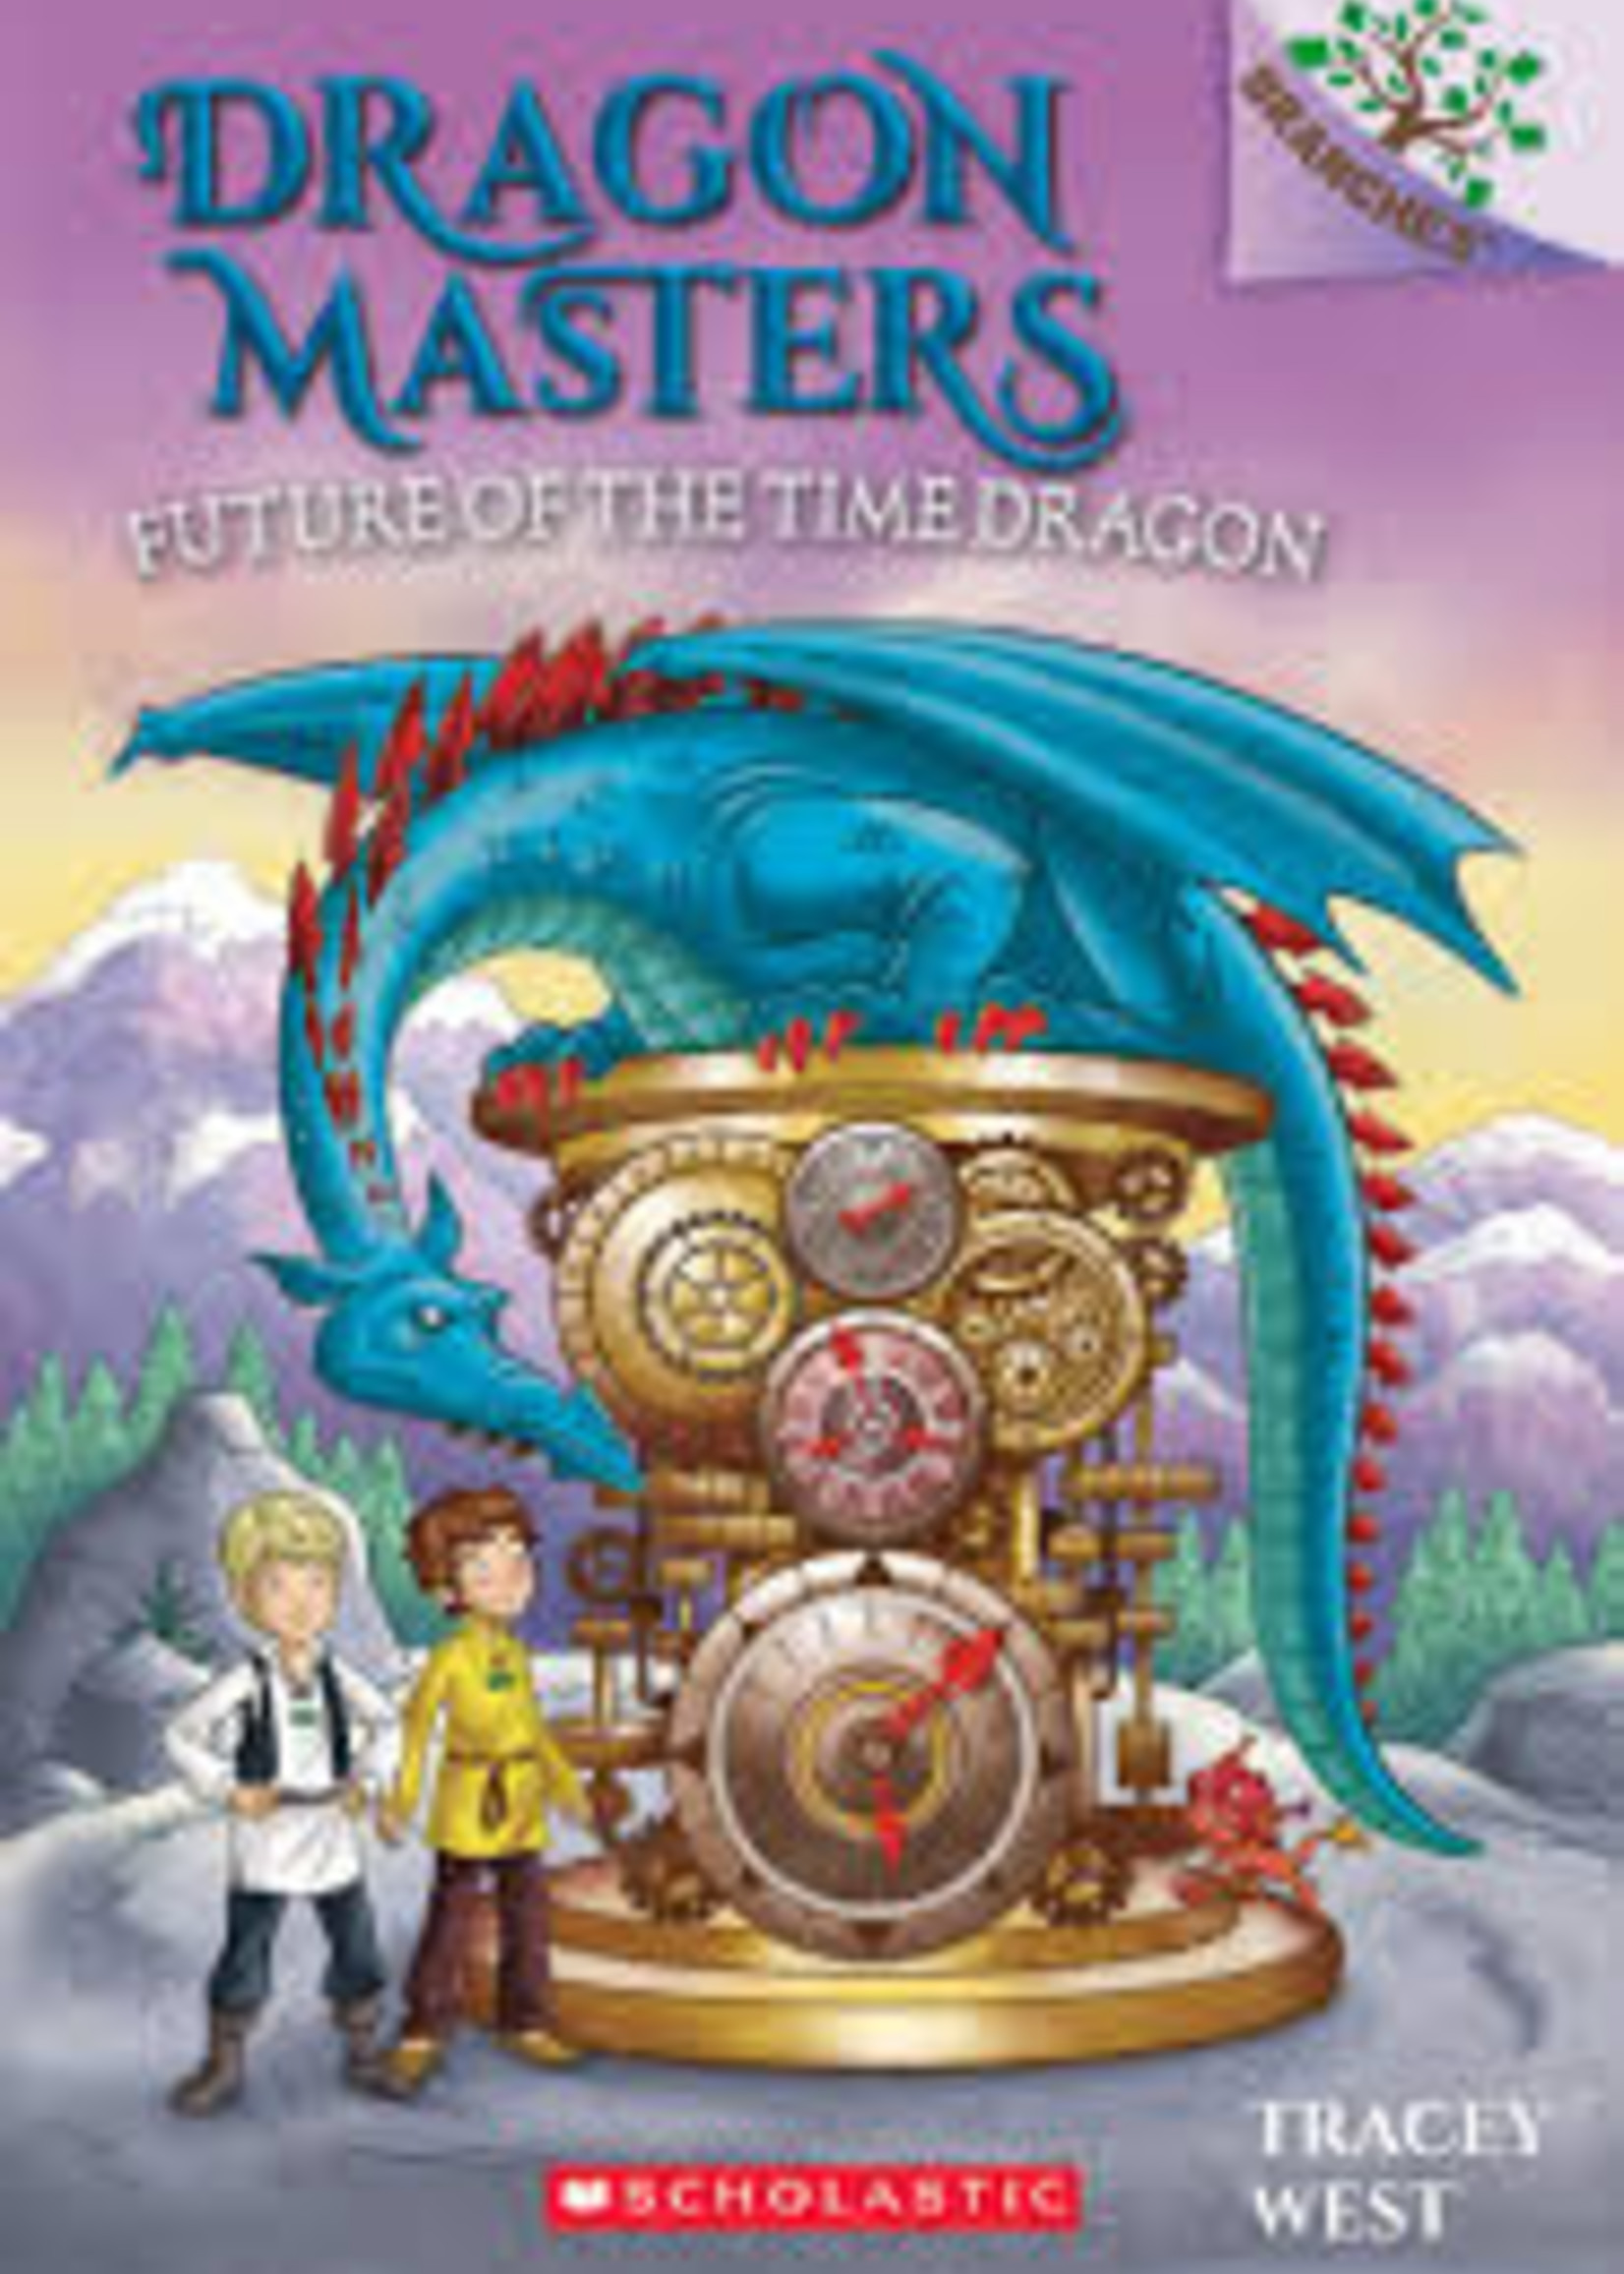 Dragon Masters #15, Future of the Time Dragon - Paperback